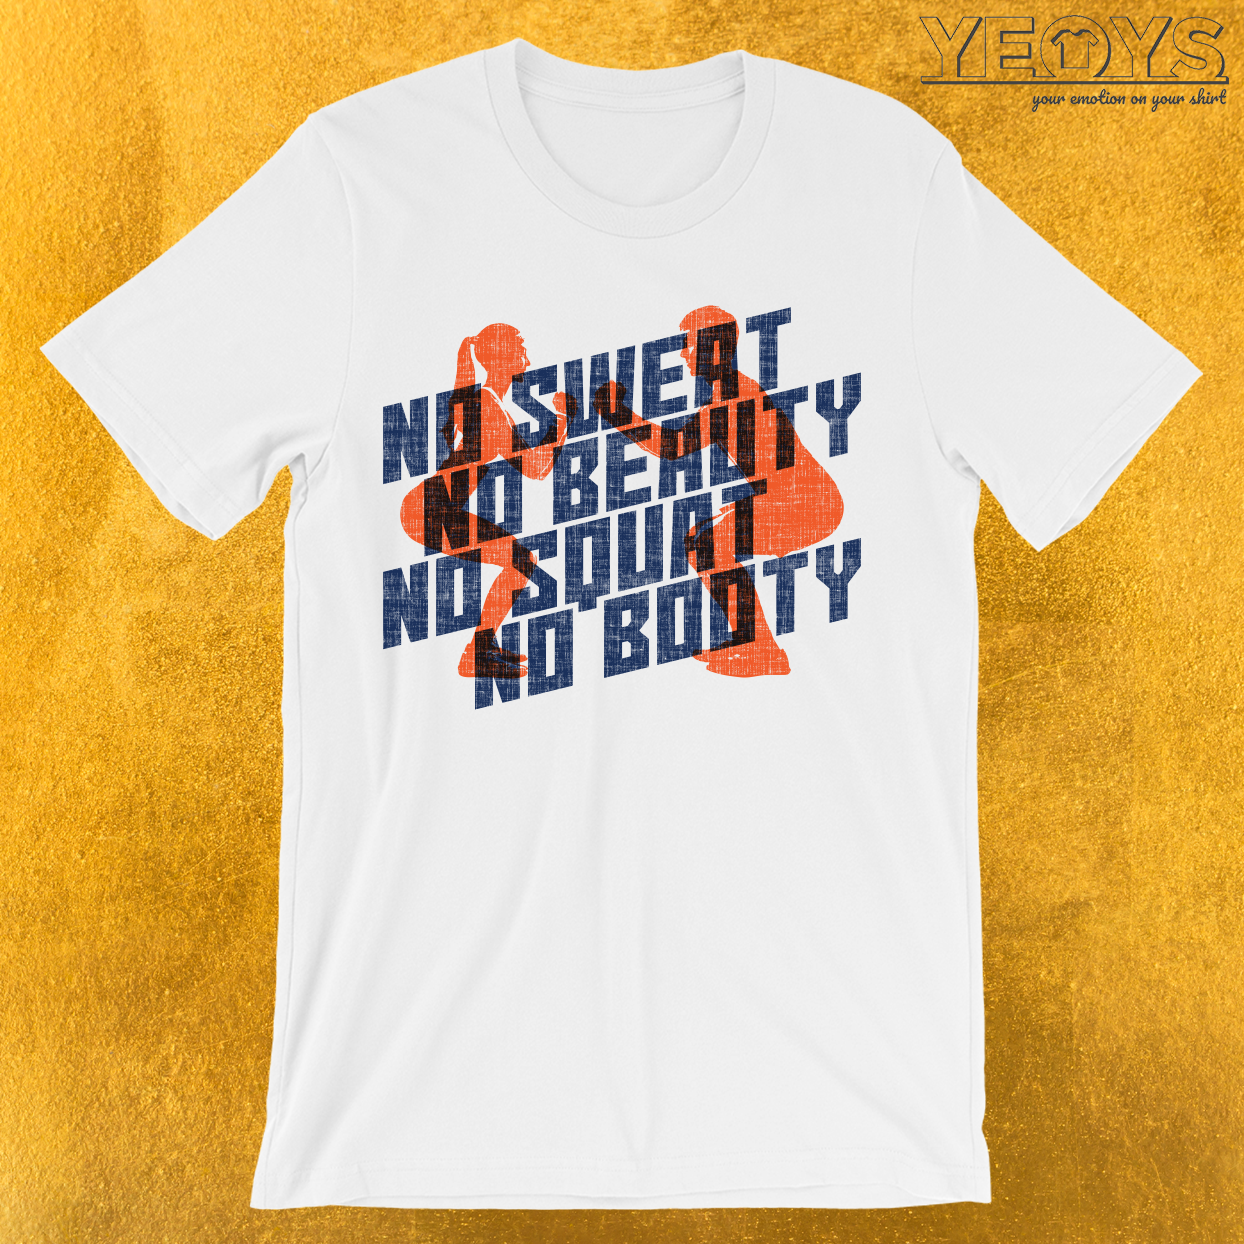 No Sweat No Beauty No Squat No Booty T-Shirt